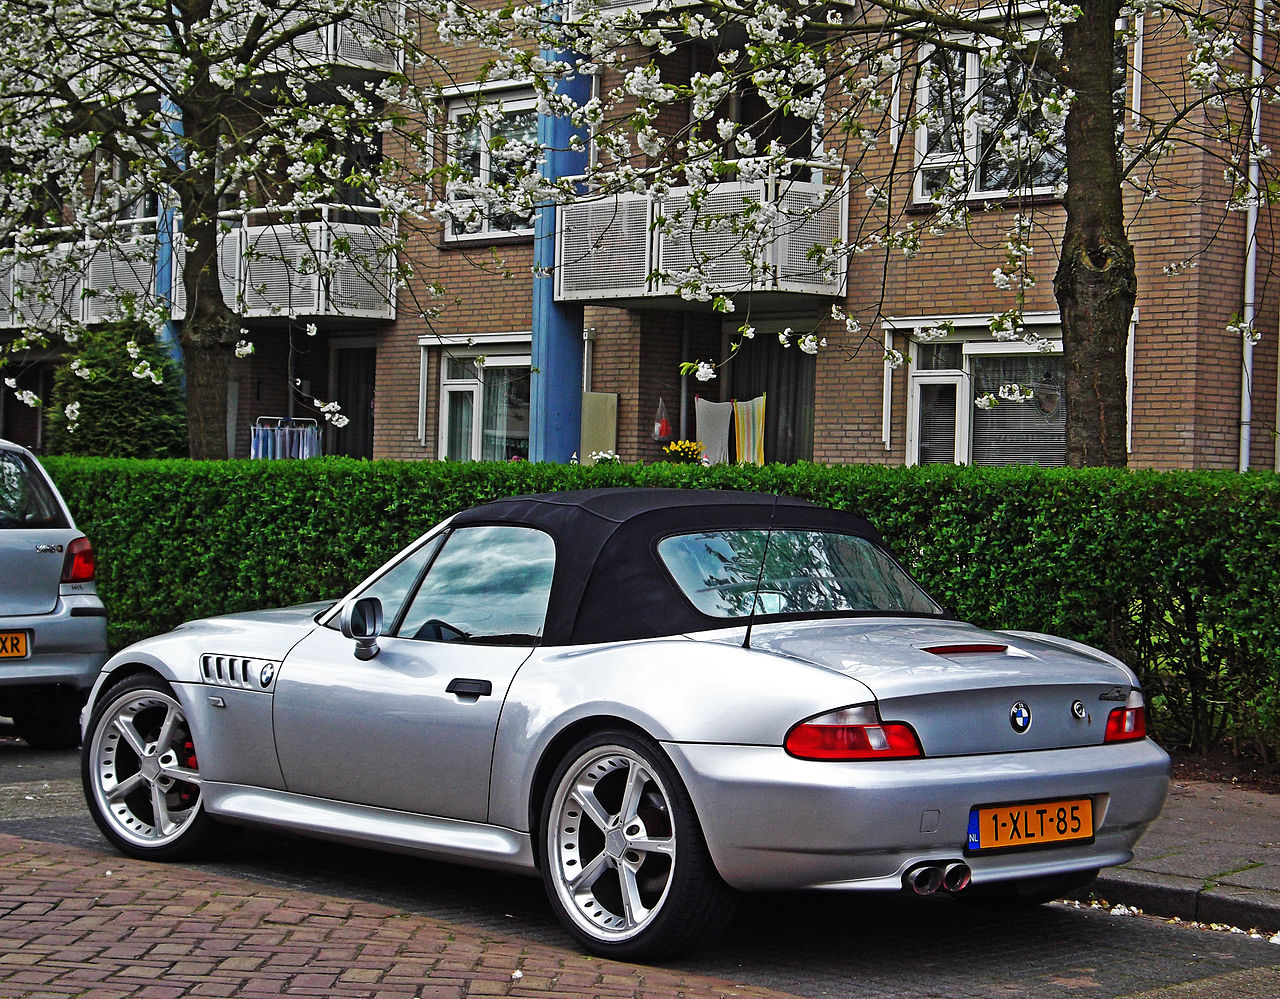 2001 Bmw Z3 M Coupe 3 2l Manual